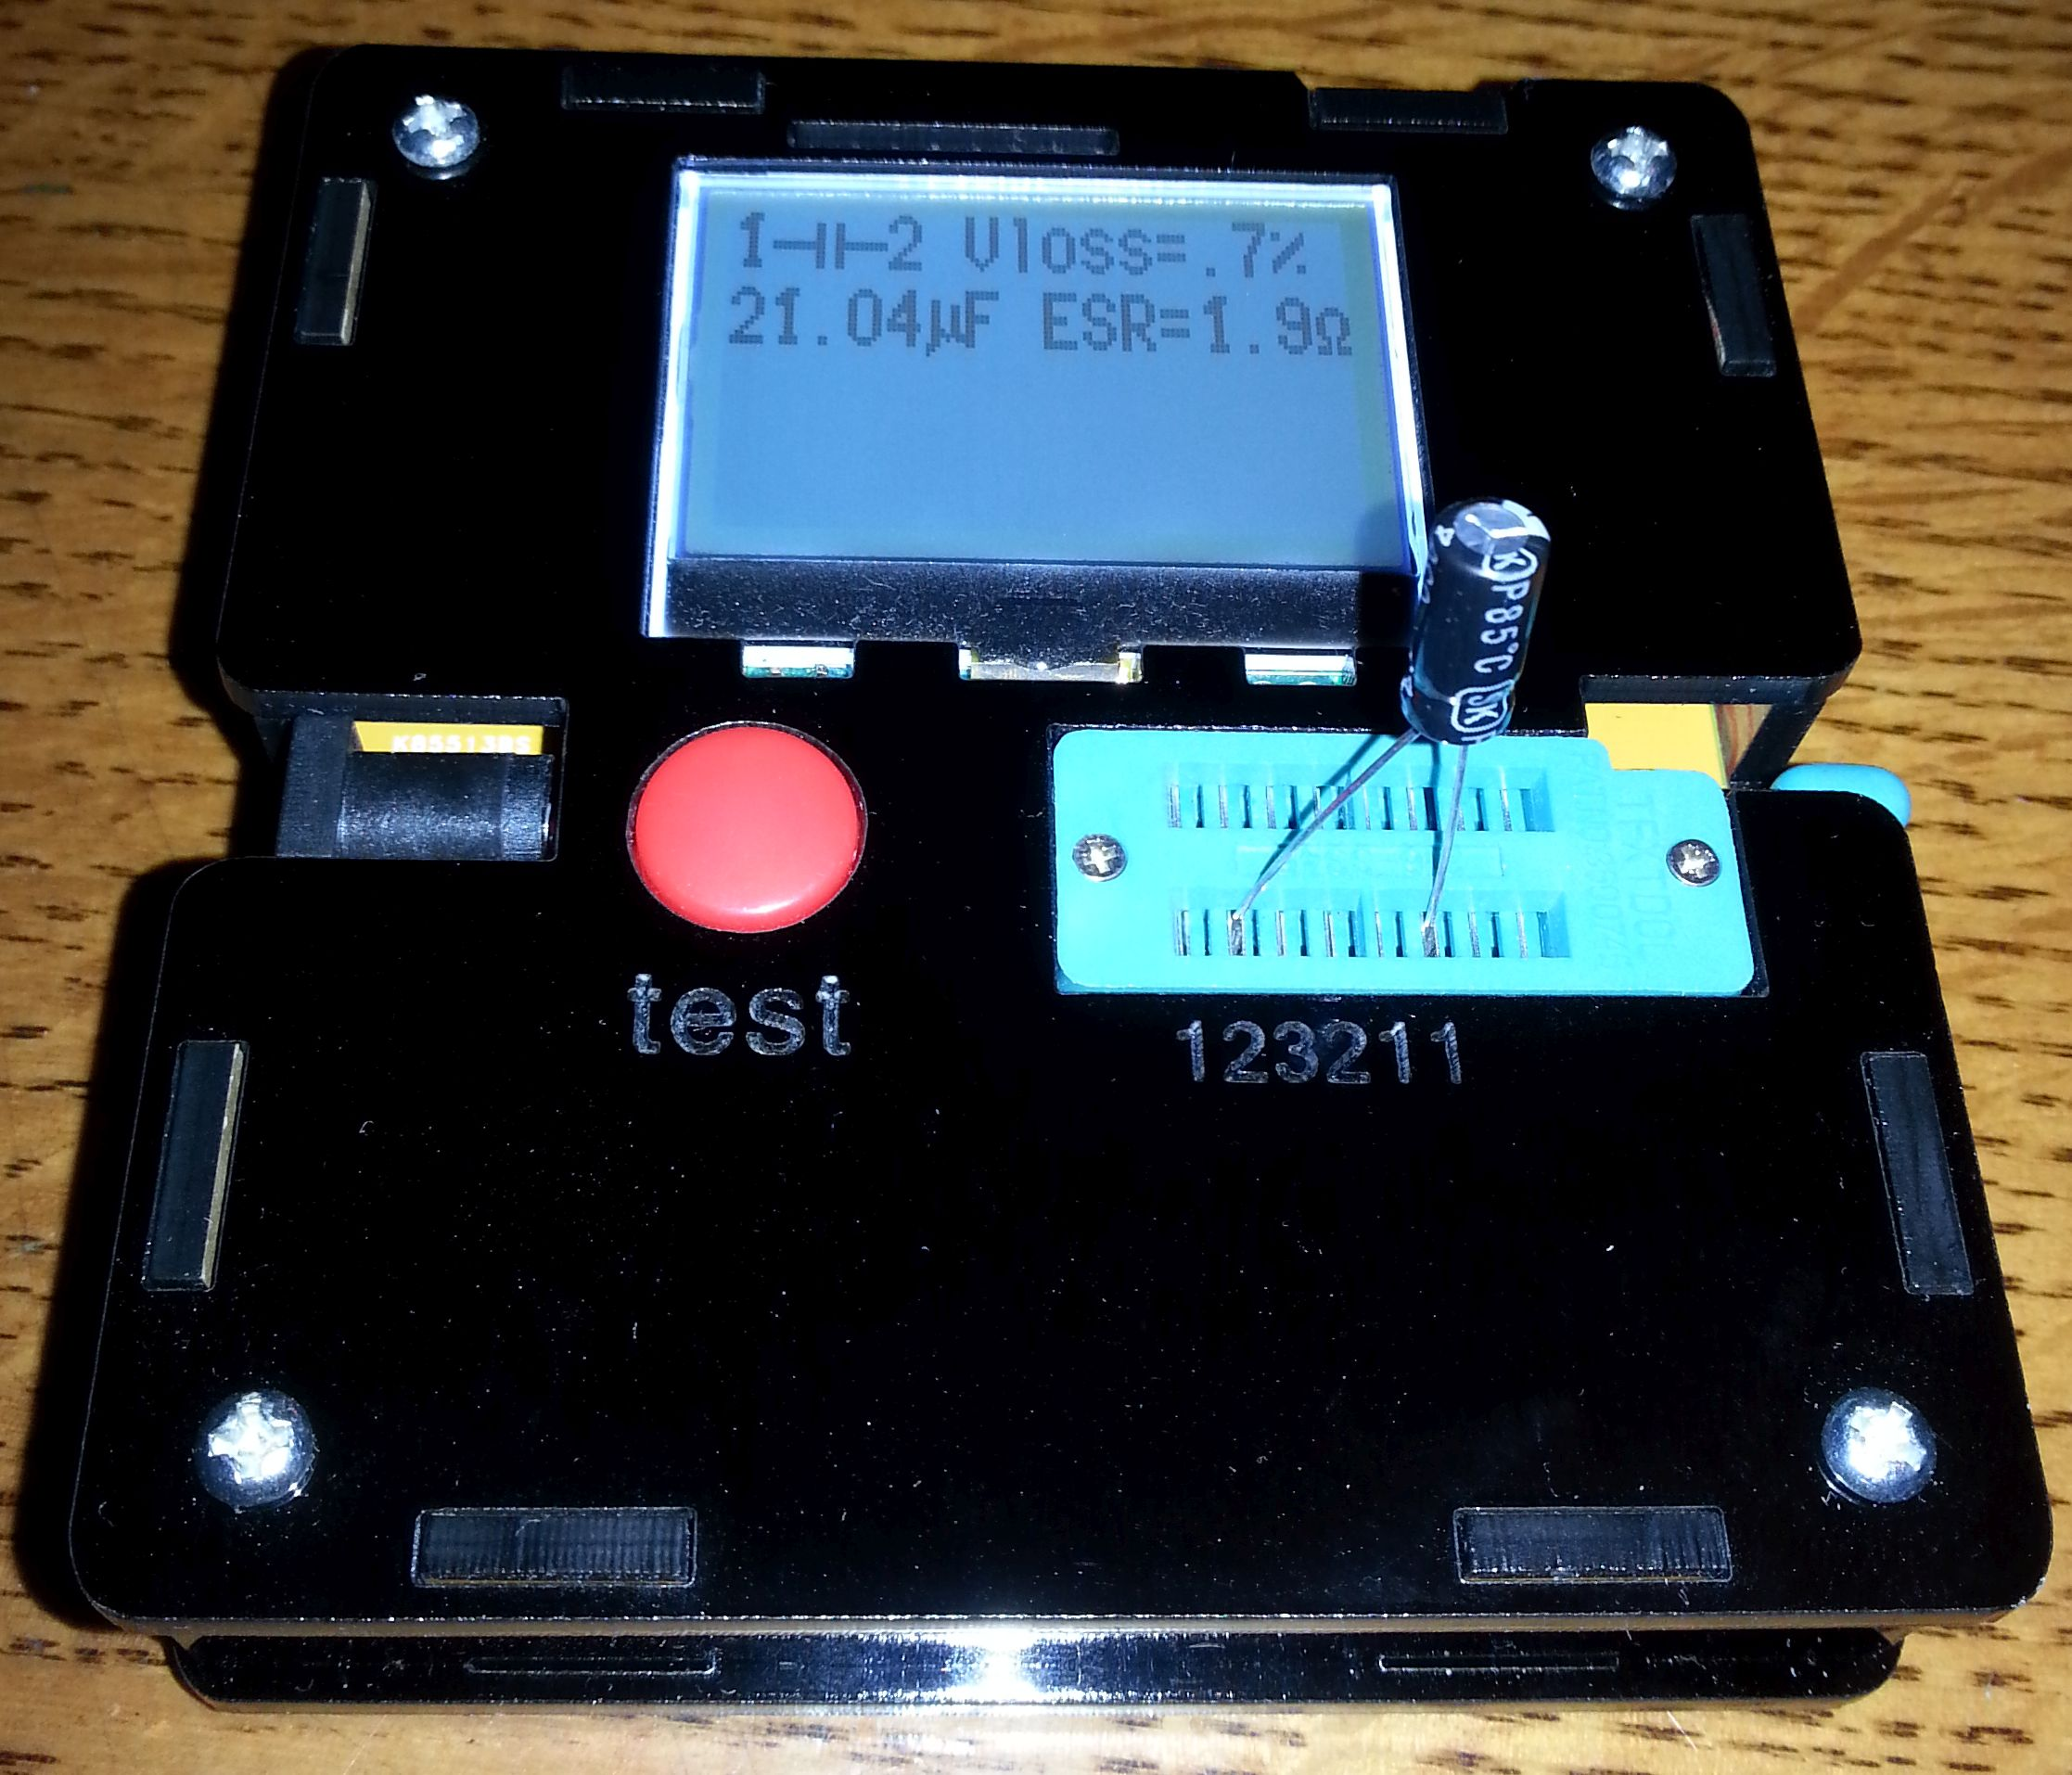 Check Out This Component Tester Sbe Chapter 36 Transistor For Repair Atmega328p Checker Measuring An Electrolytic Capacitor